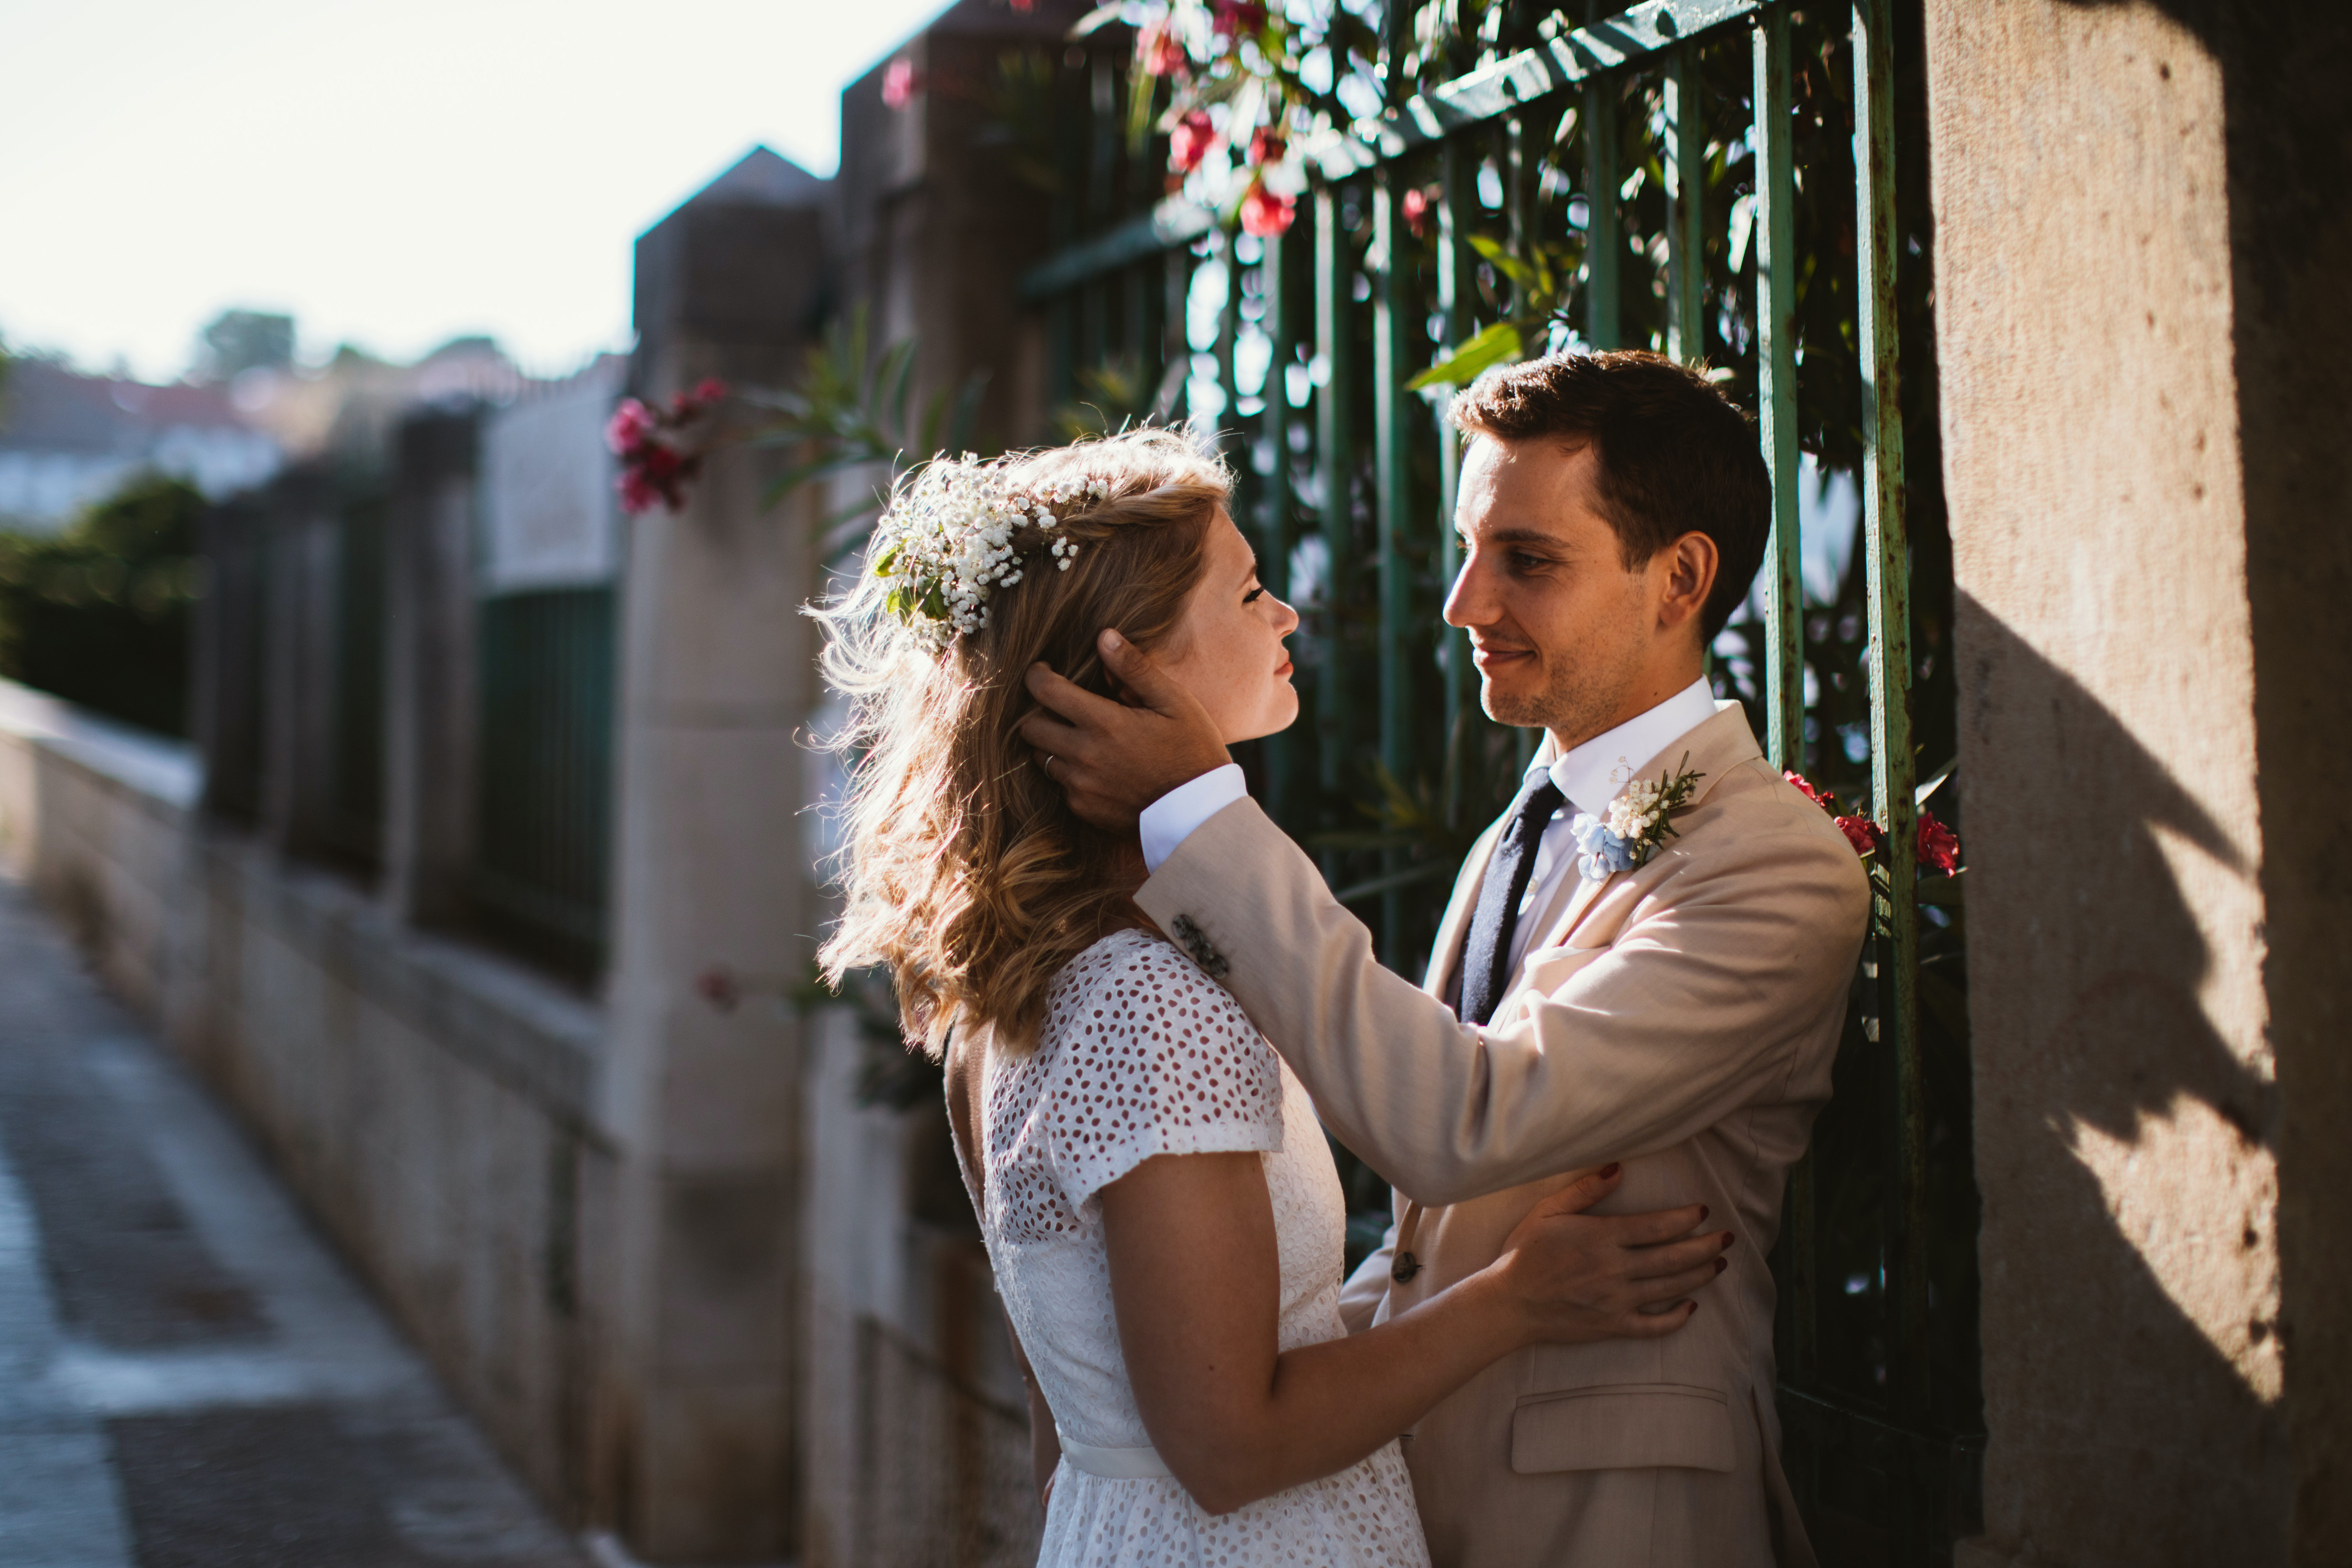 Real wedding: Eva & Mattias